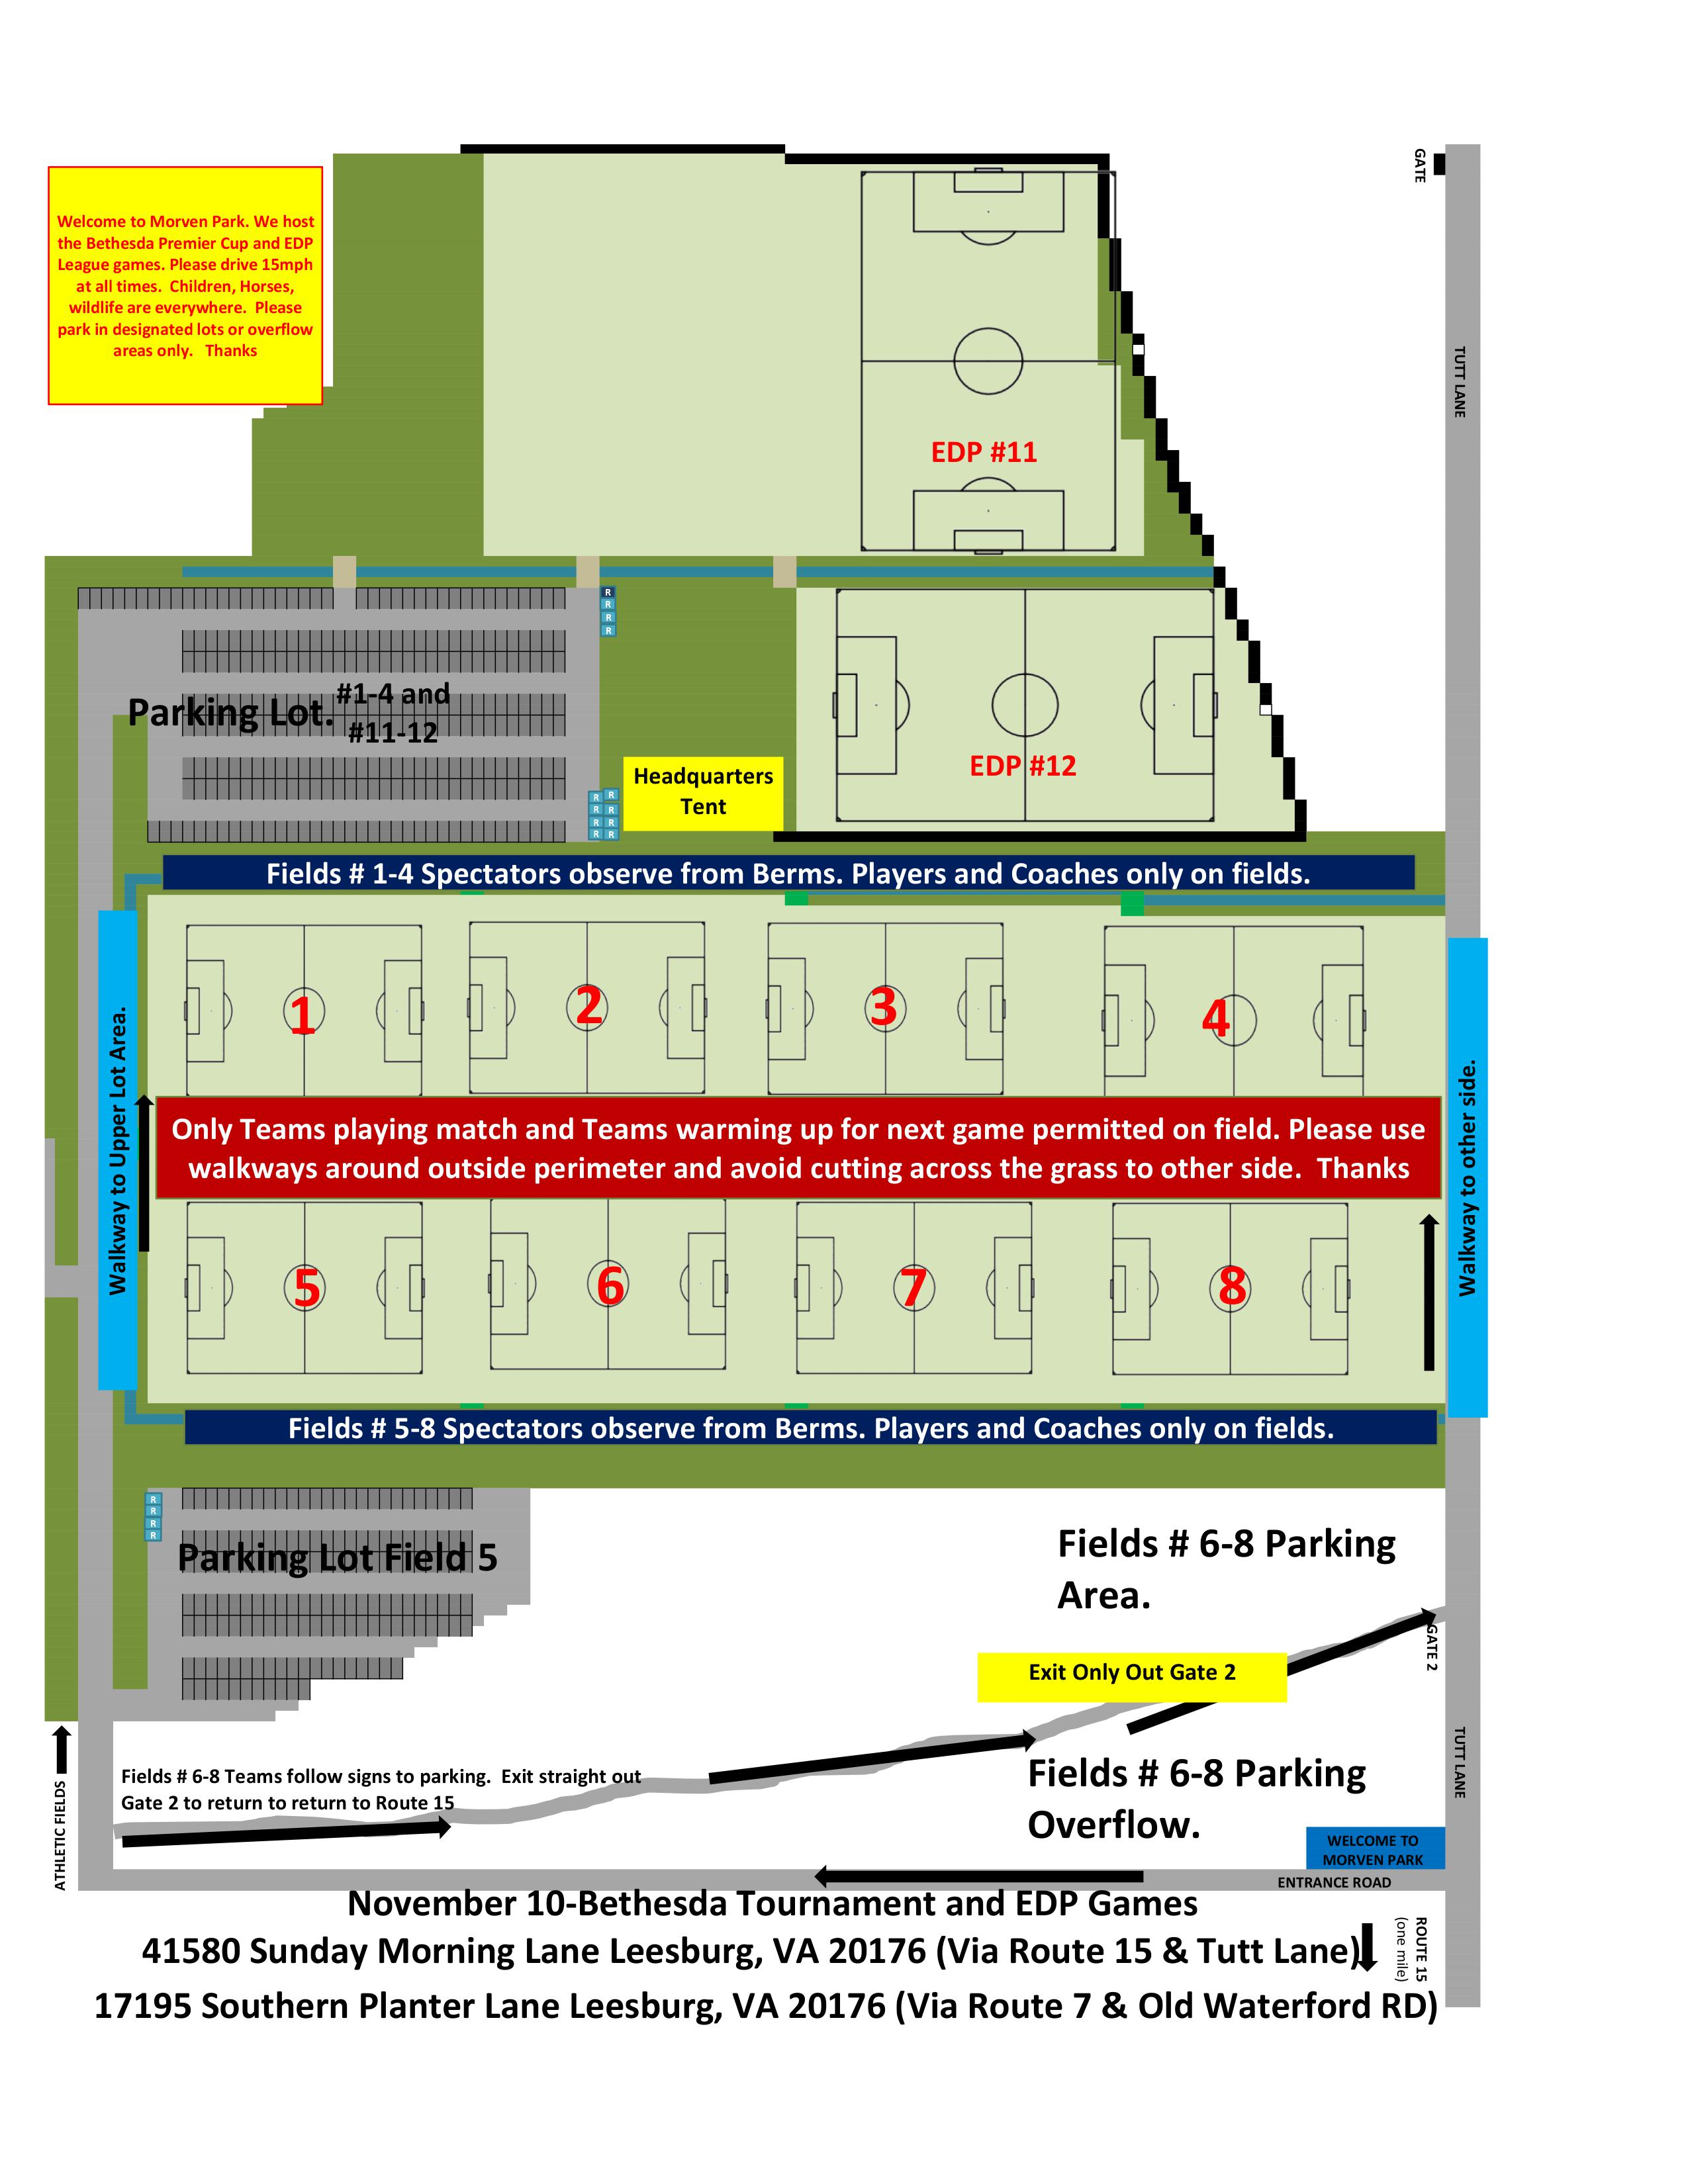 November 10 Field Layout (Bethesda Tournament and EDP Games)